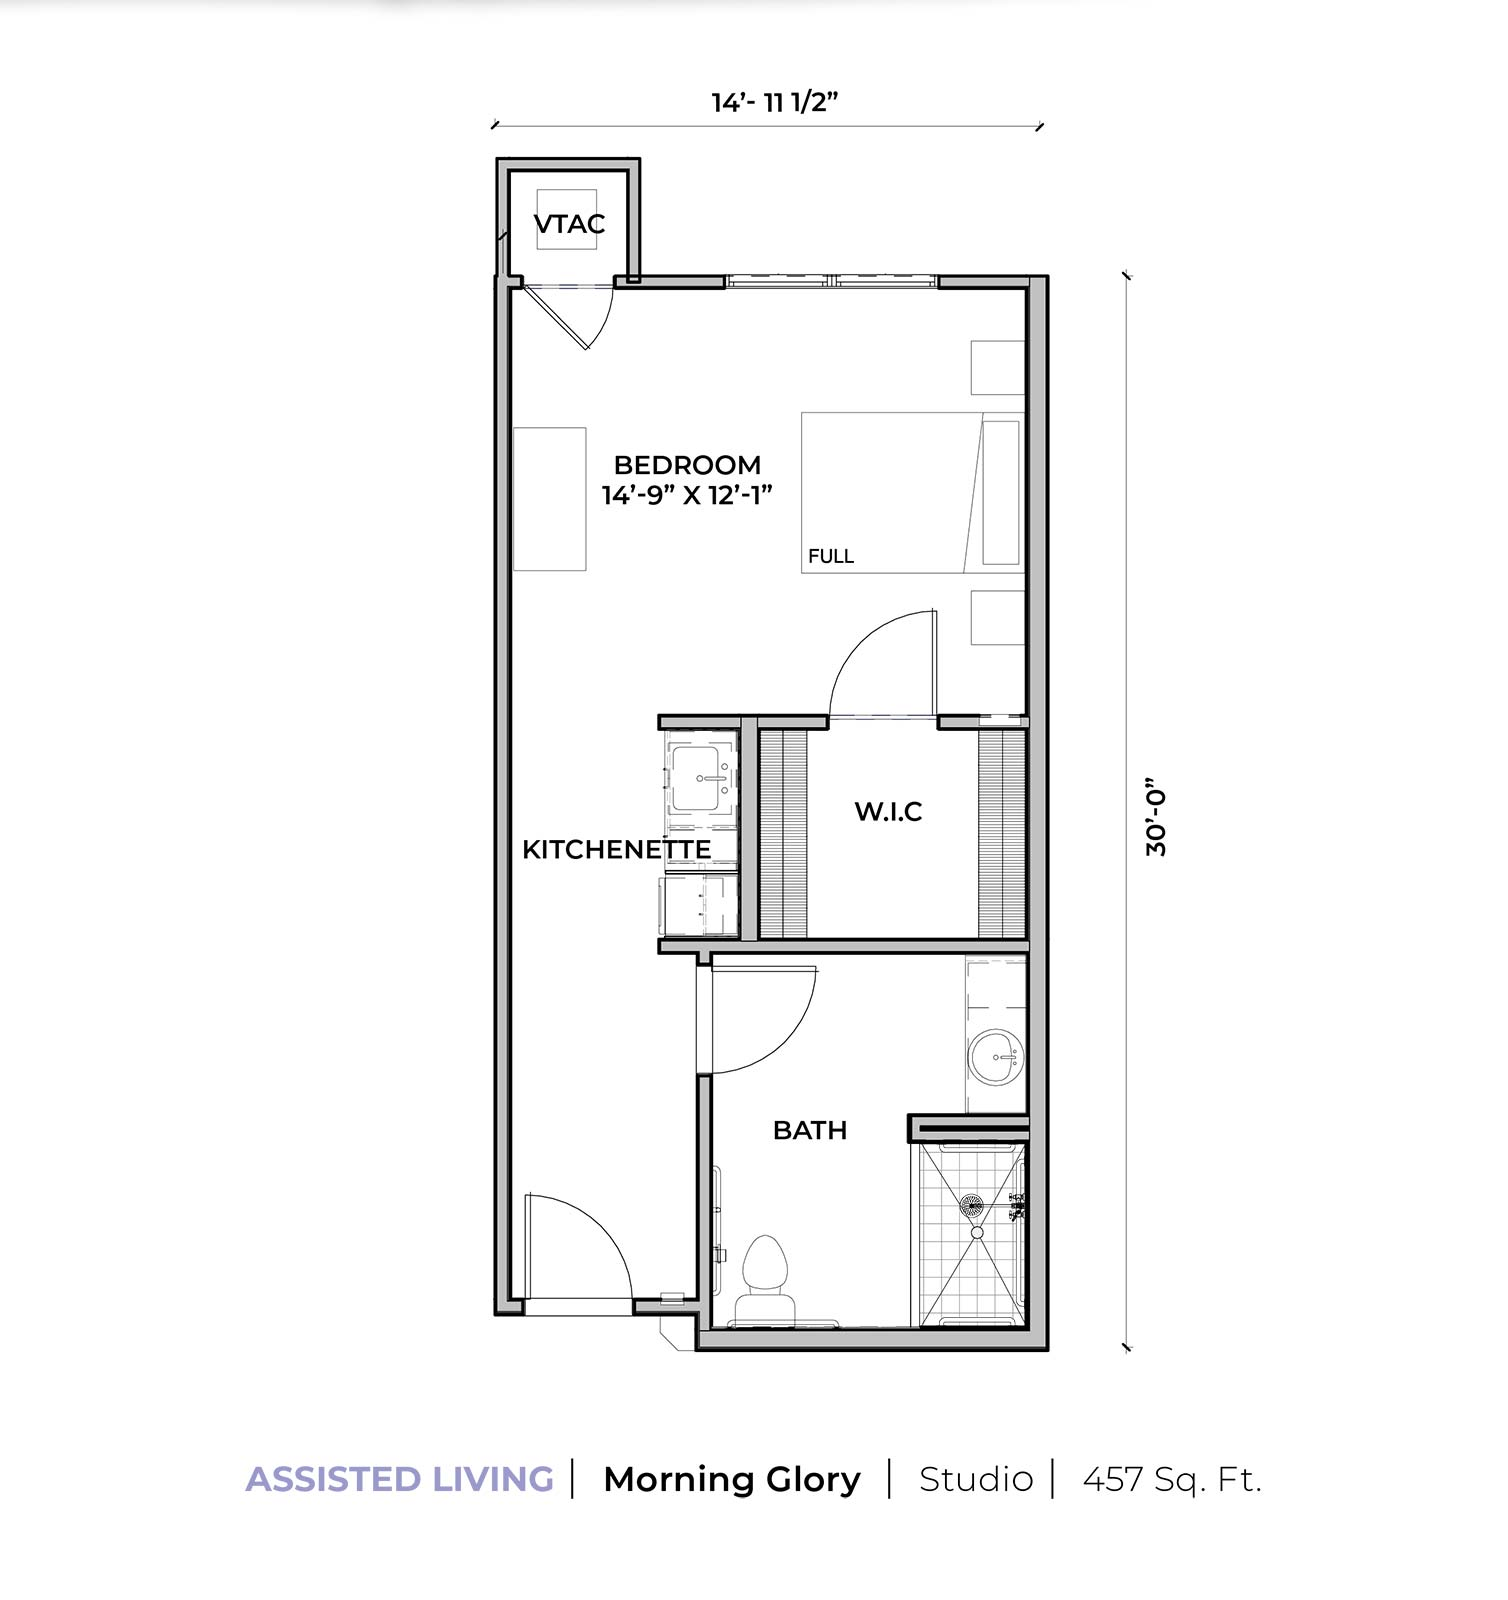 Assisted living Morning Glory studio apartment floor plan